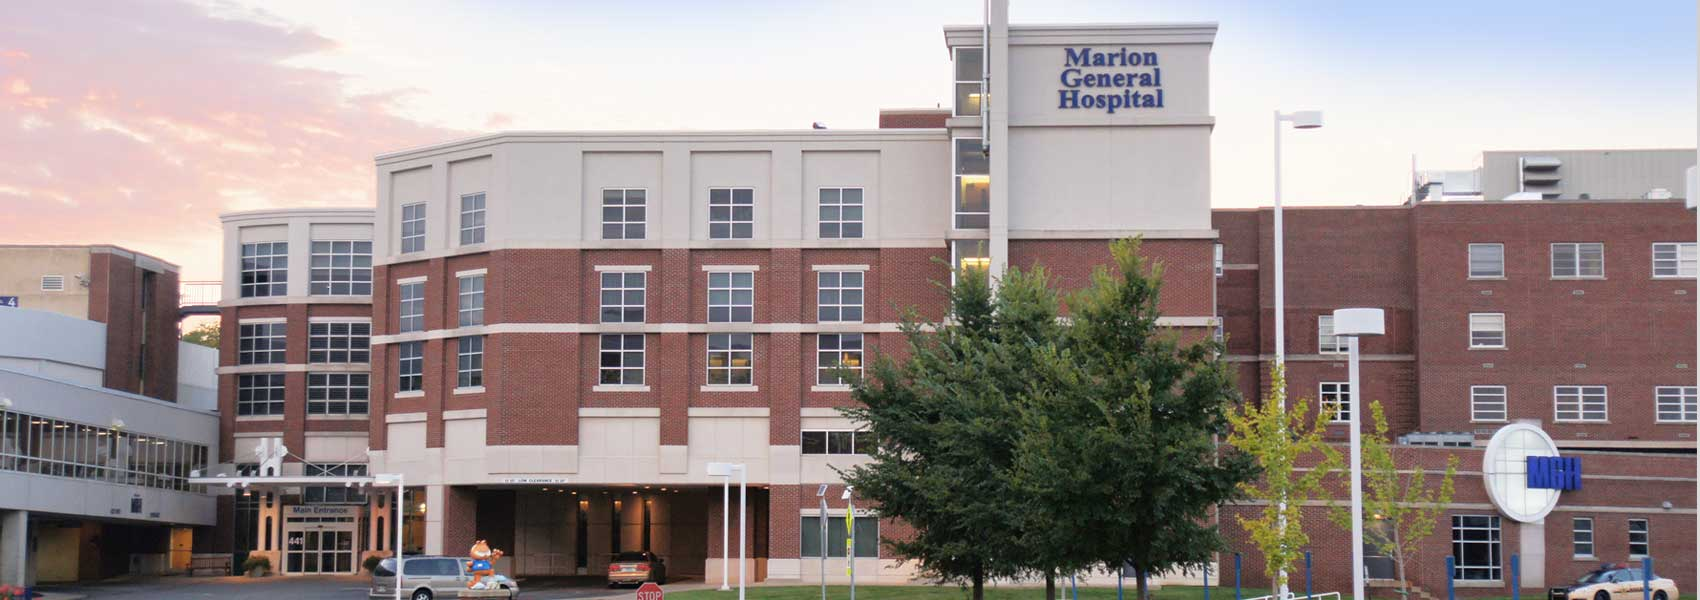 MGH Family Medicine Center - Northwood - Marion, IN